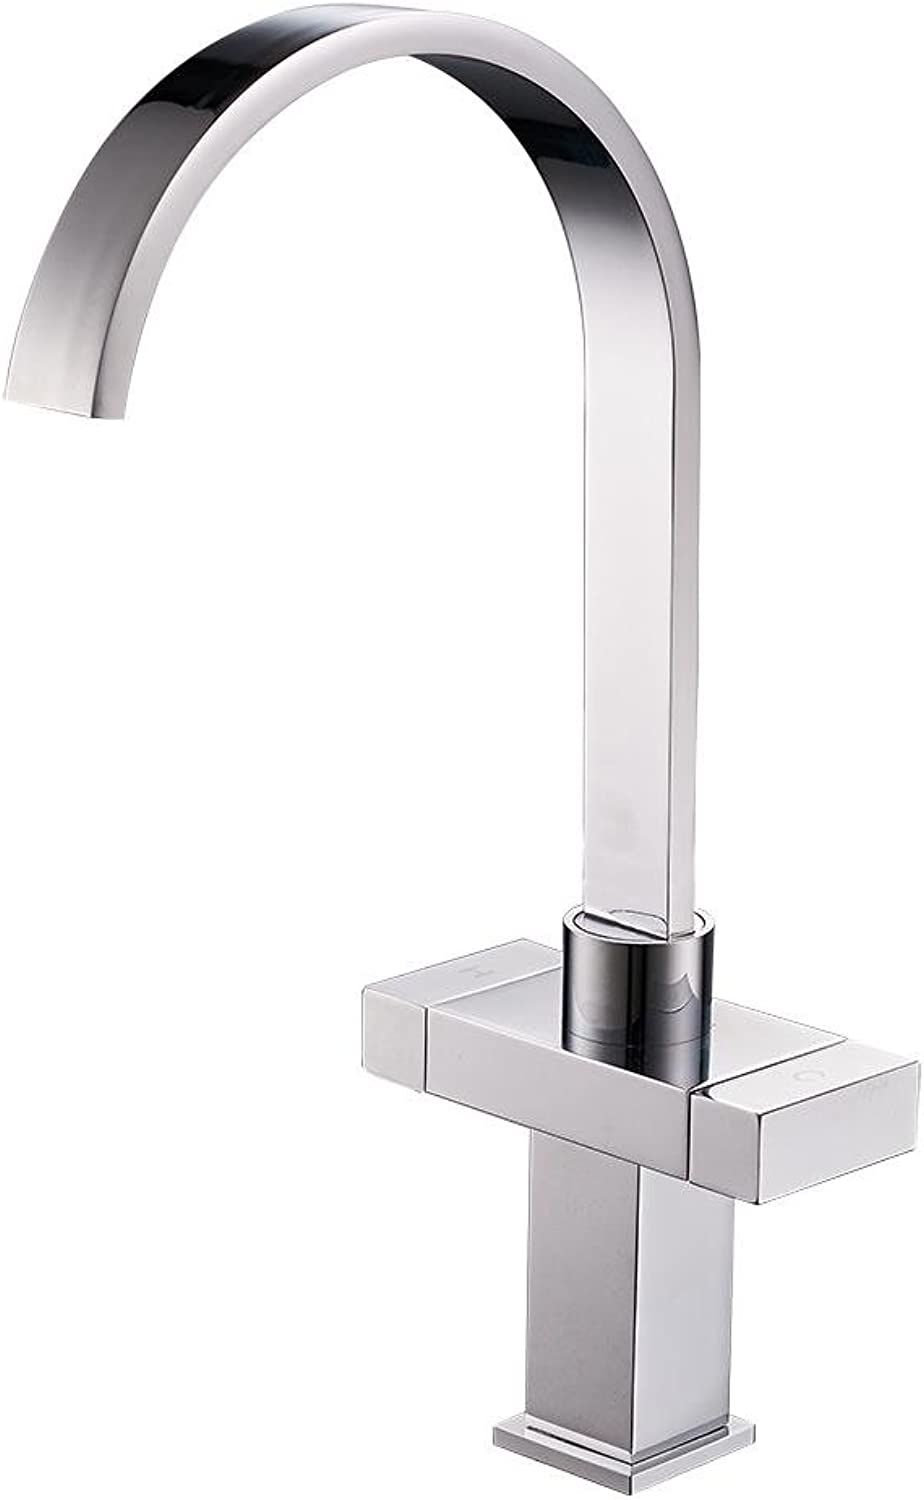 FCSHLT Double Handle Sink Mixer Tap in Front of Inward Opening Bathroom Faucet Swivel Spout Stainless Steel Polished Chrome